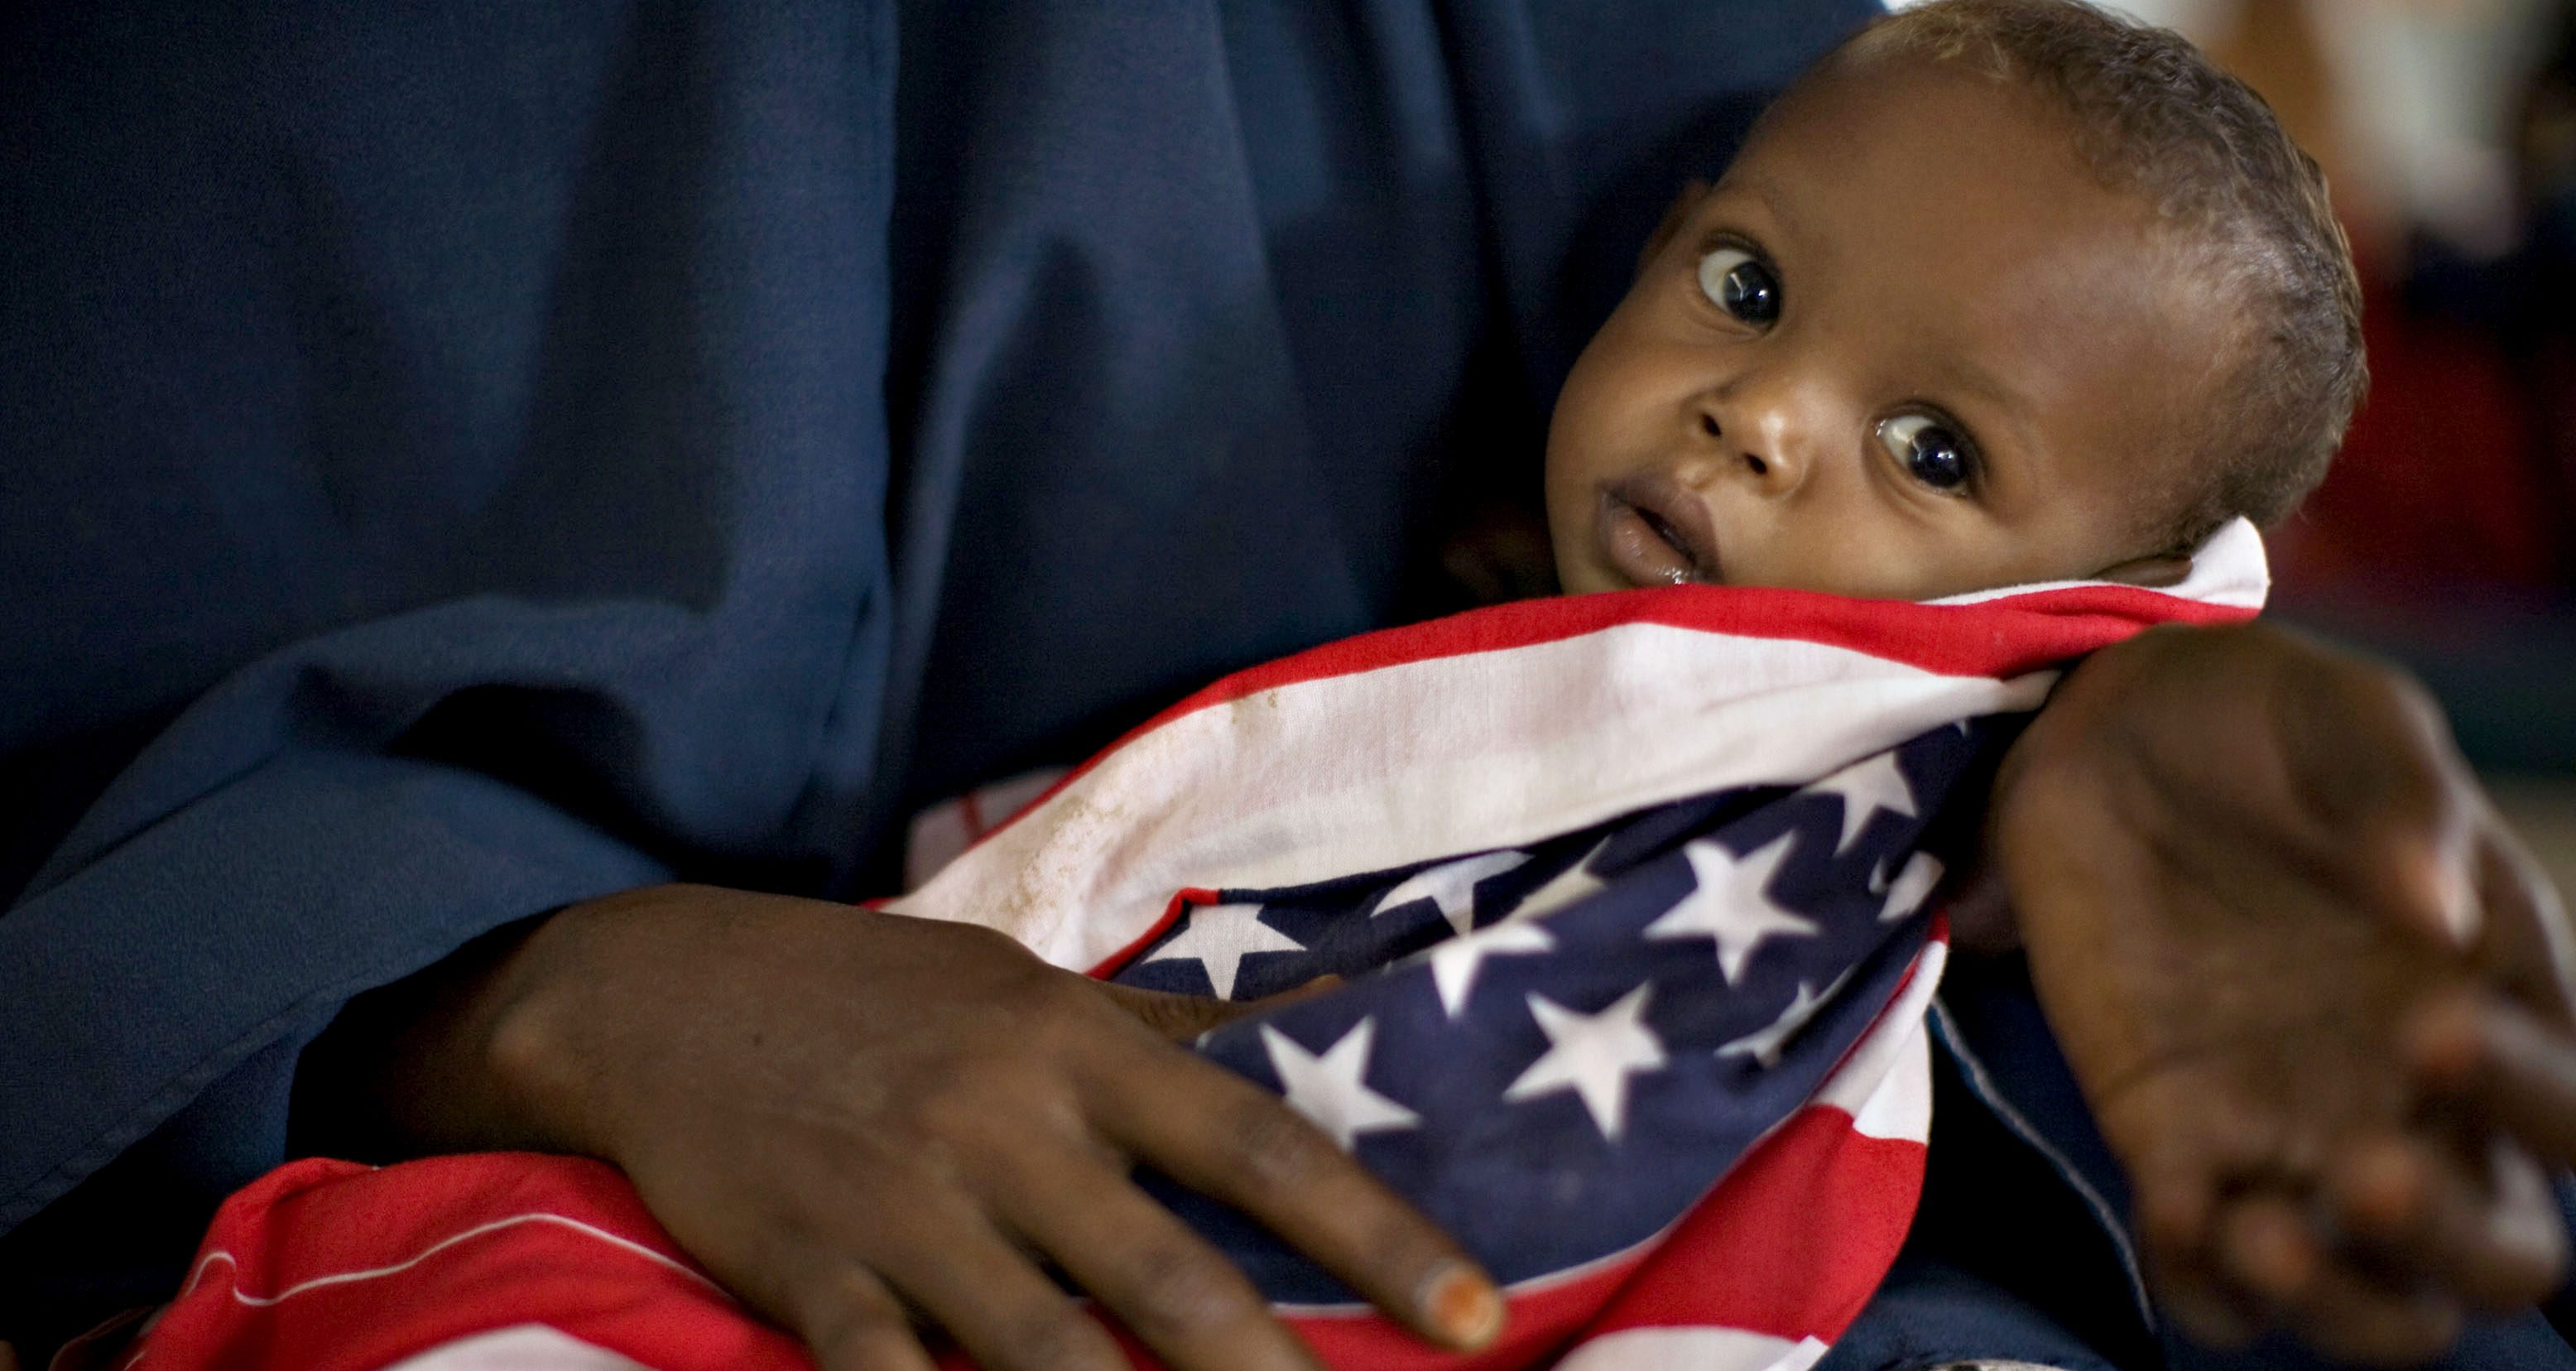 """A malnourished Somali child is wrapped in an American """"Stars and Stripes"""" cloth at a therapeutic feeding center at Dagahaley camp in Dadaab in Kenya's northeastern province, June 8, 2009. Weeks of intense fighting in Somalia has driven mor than 100,000 people from their homes, swelling camps on the Kenyan border that are already the largest and oldest in the world, sheltering more than 270,000 Somali refugees. Picture taken June 8, 2009."""